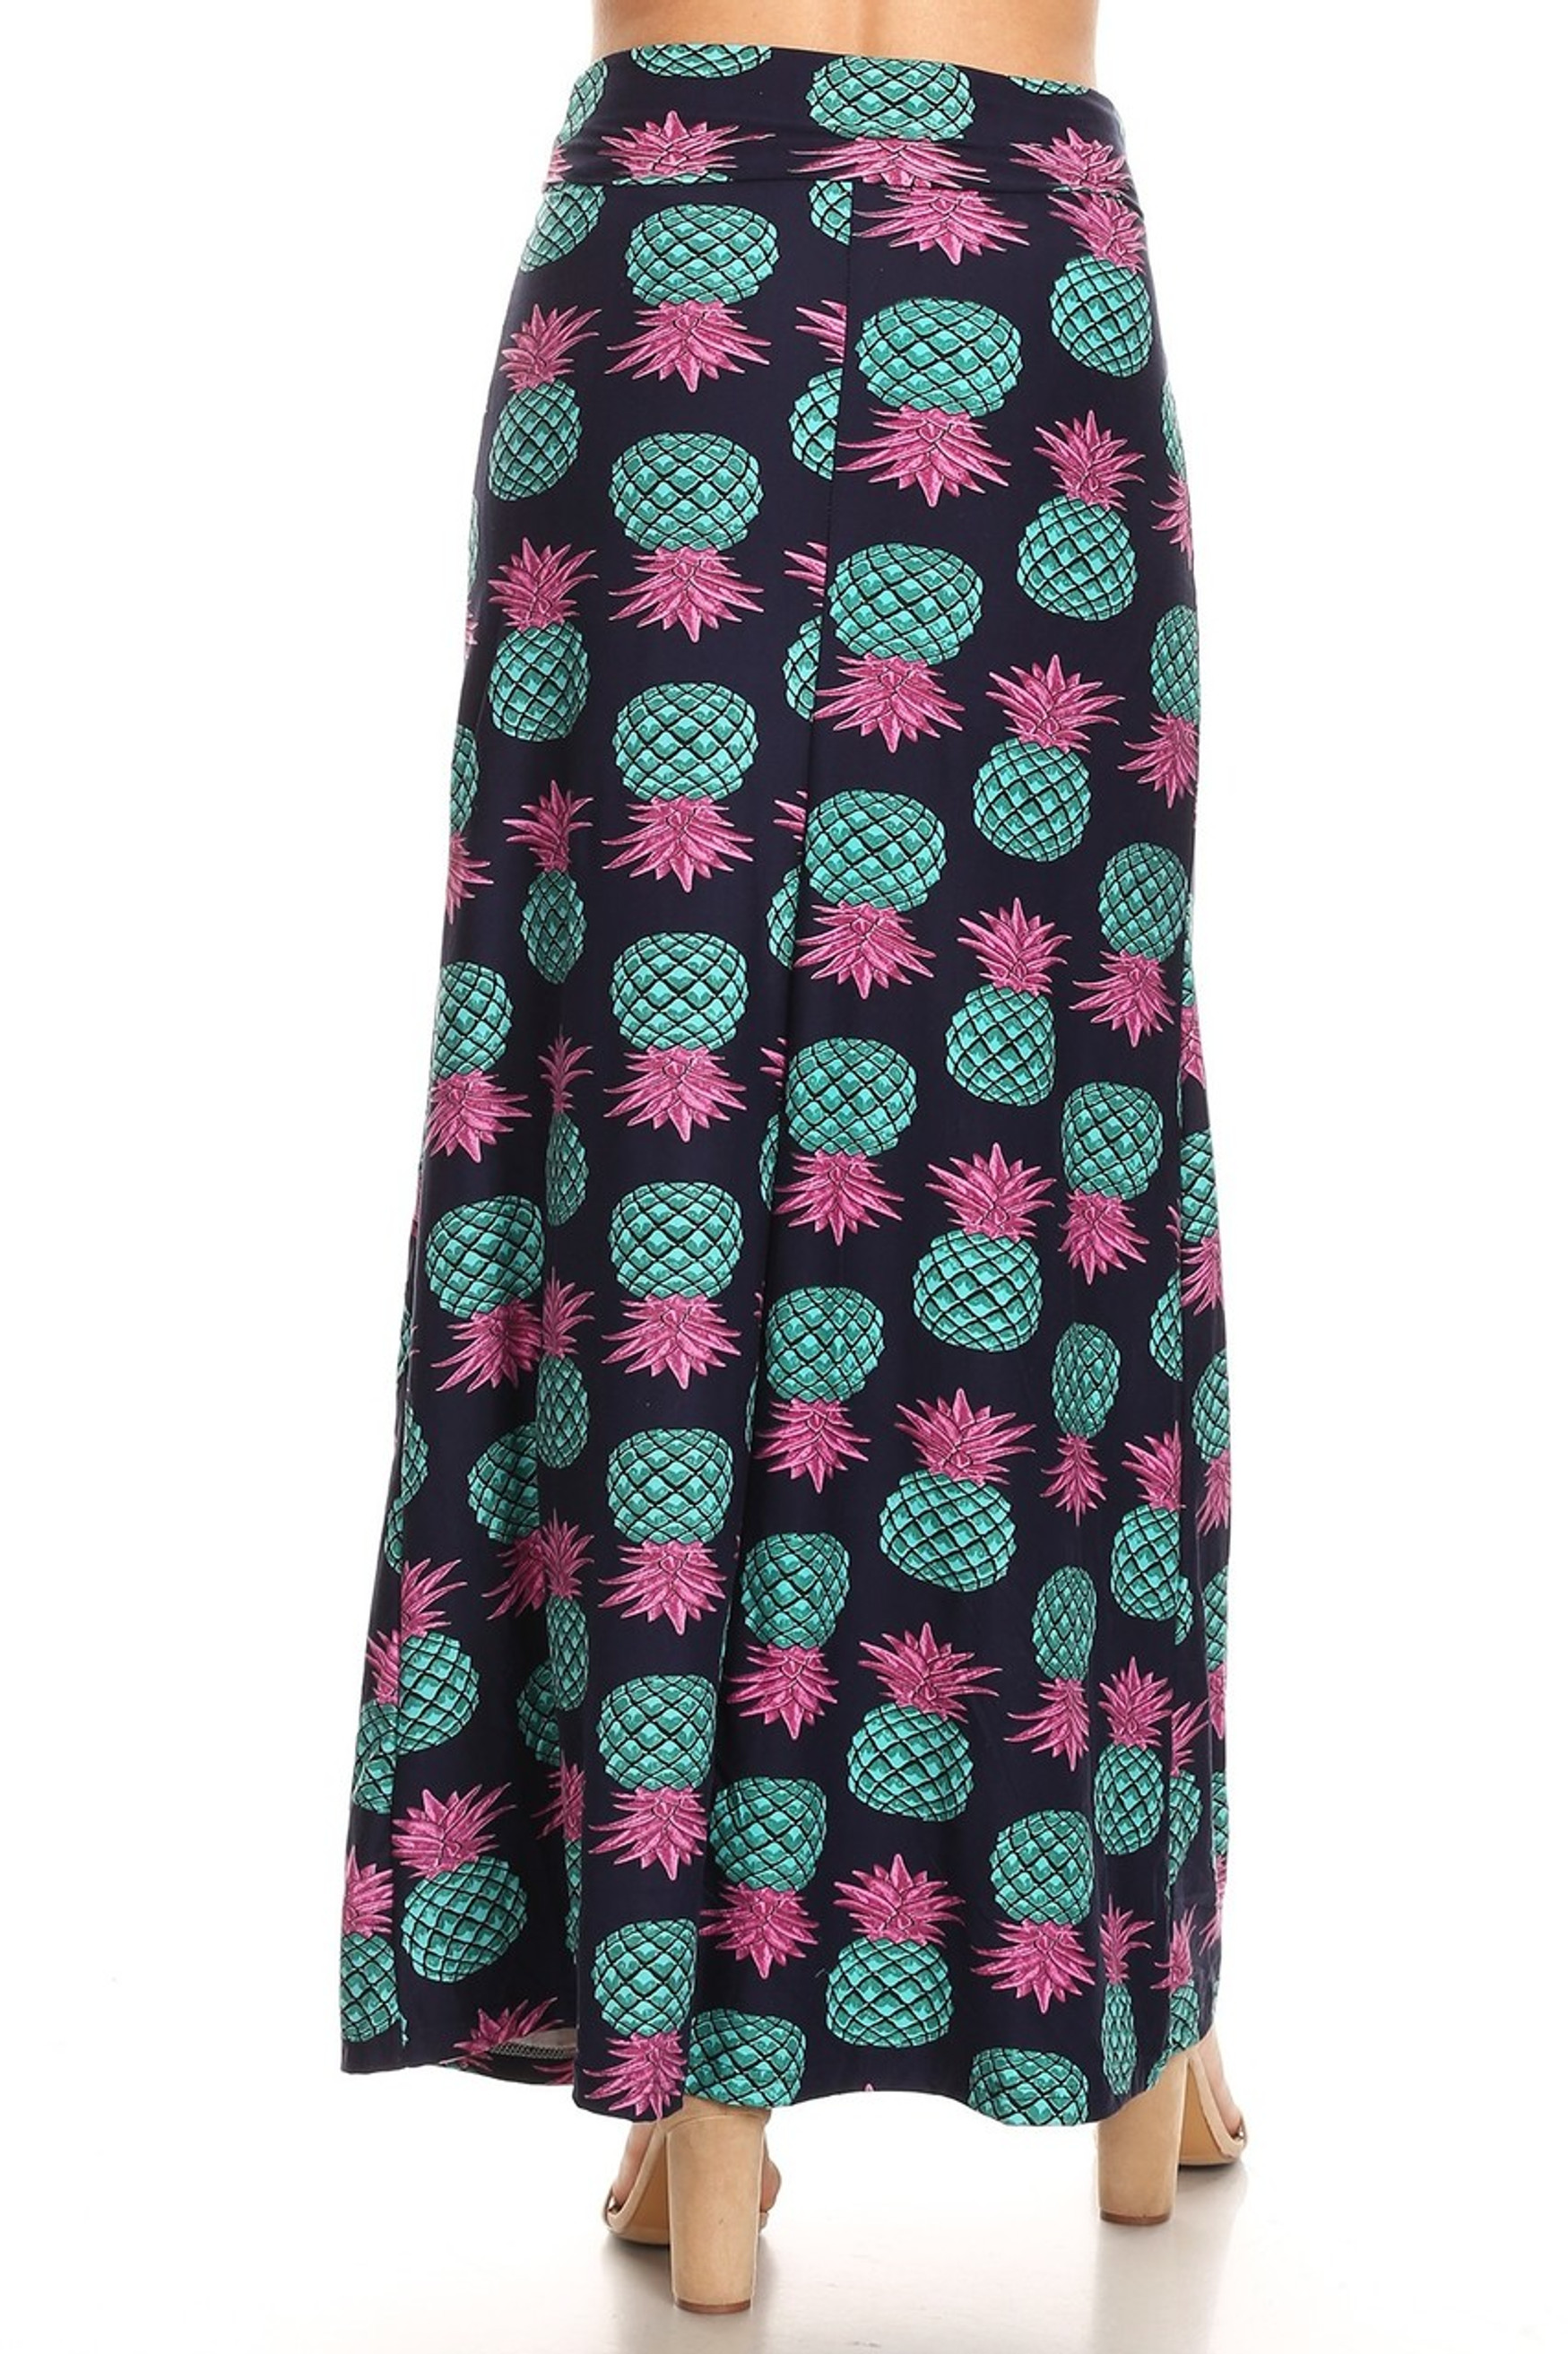 Teal Pineapple Plus Size Buttery Soft Maxi Skirt